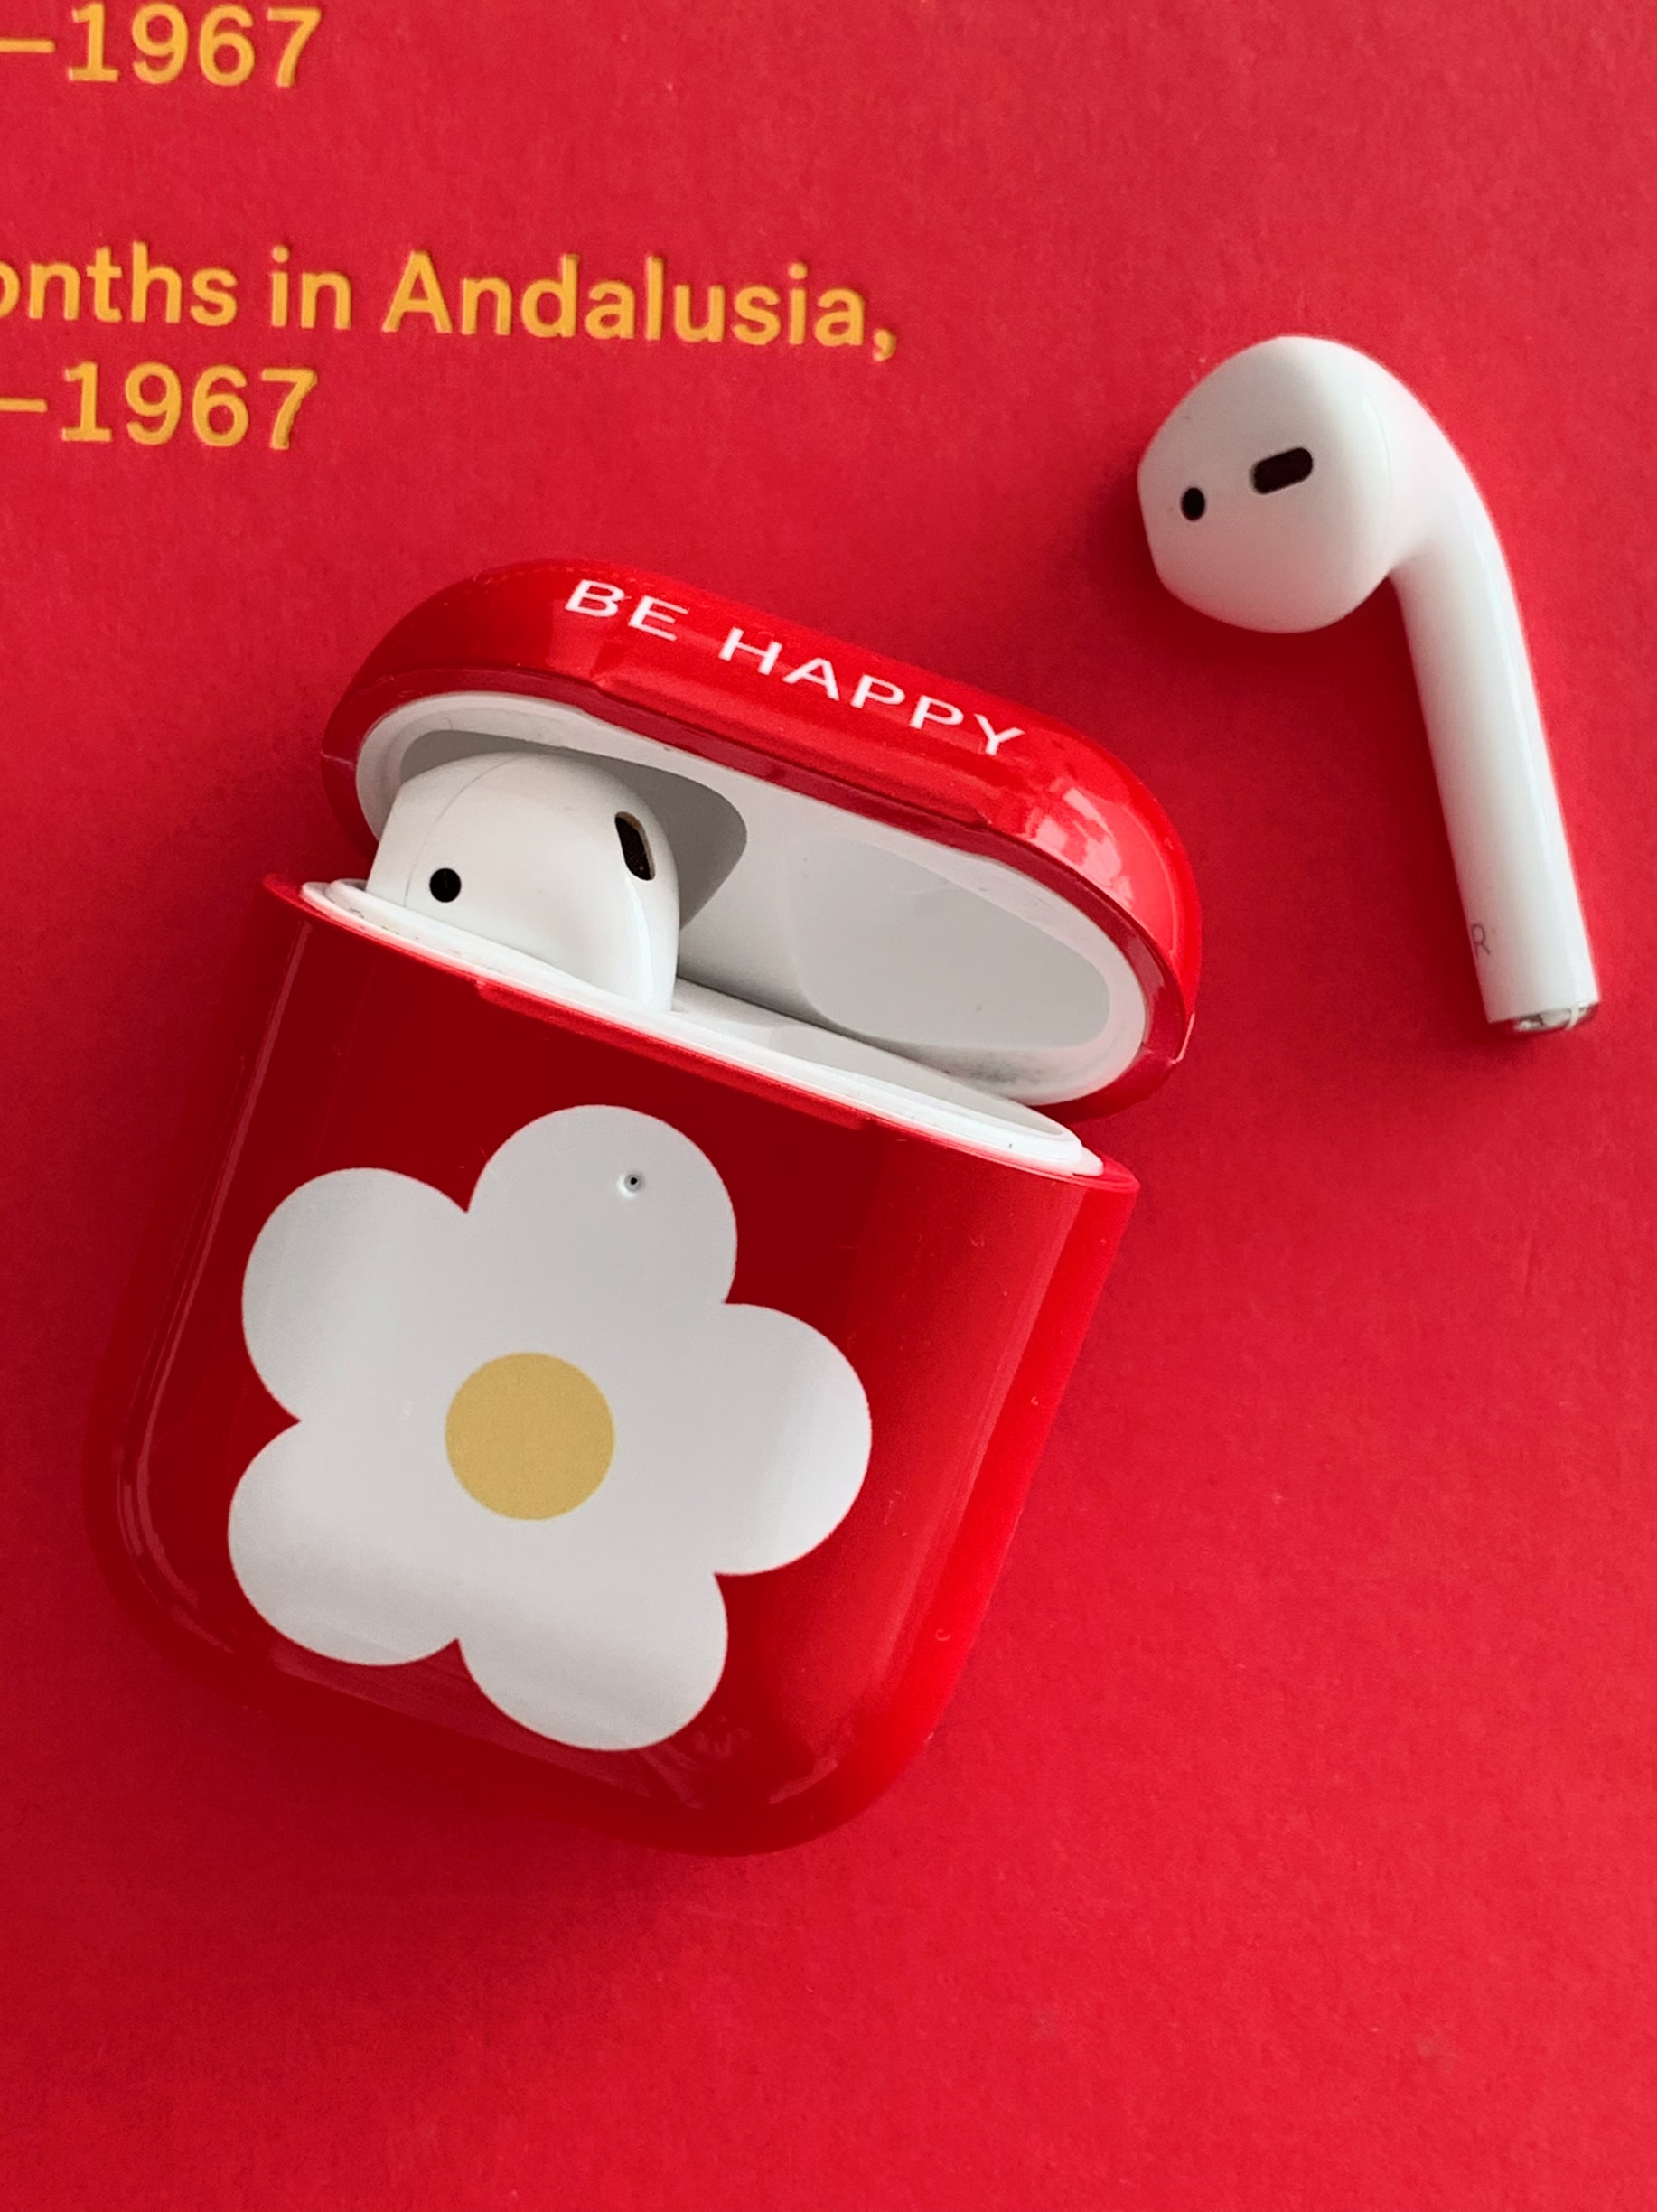 Be happy [ Red: Airpods ]